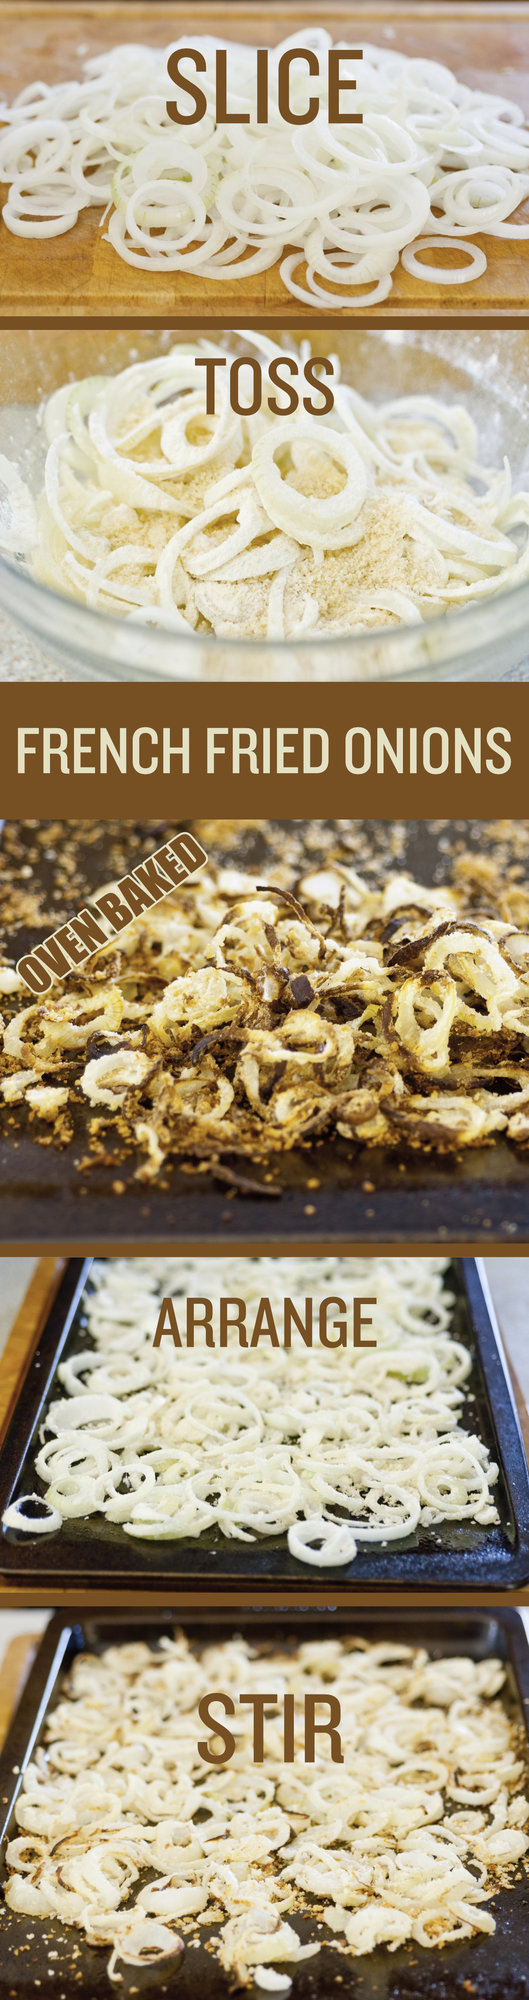 French Fried Onions - Oven Baked